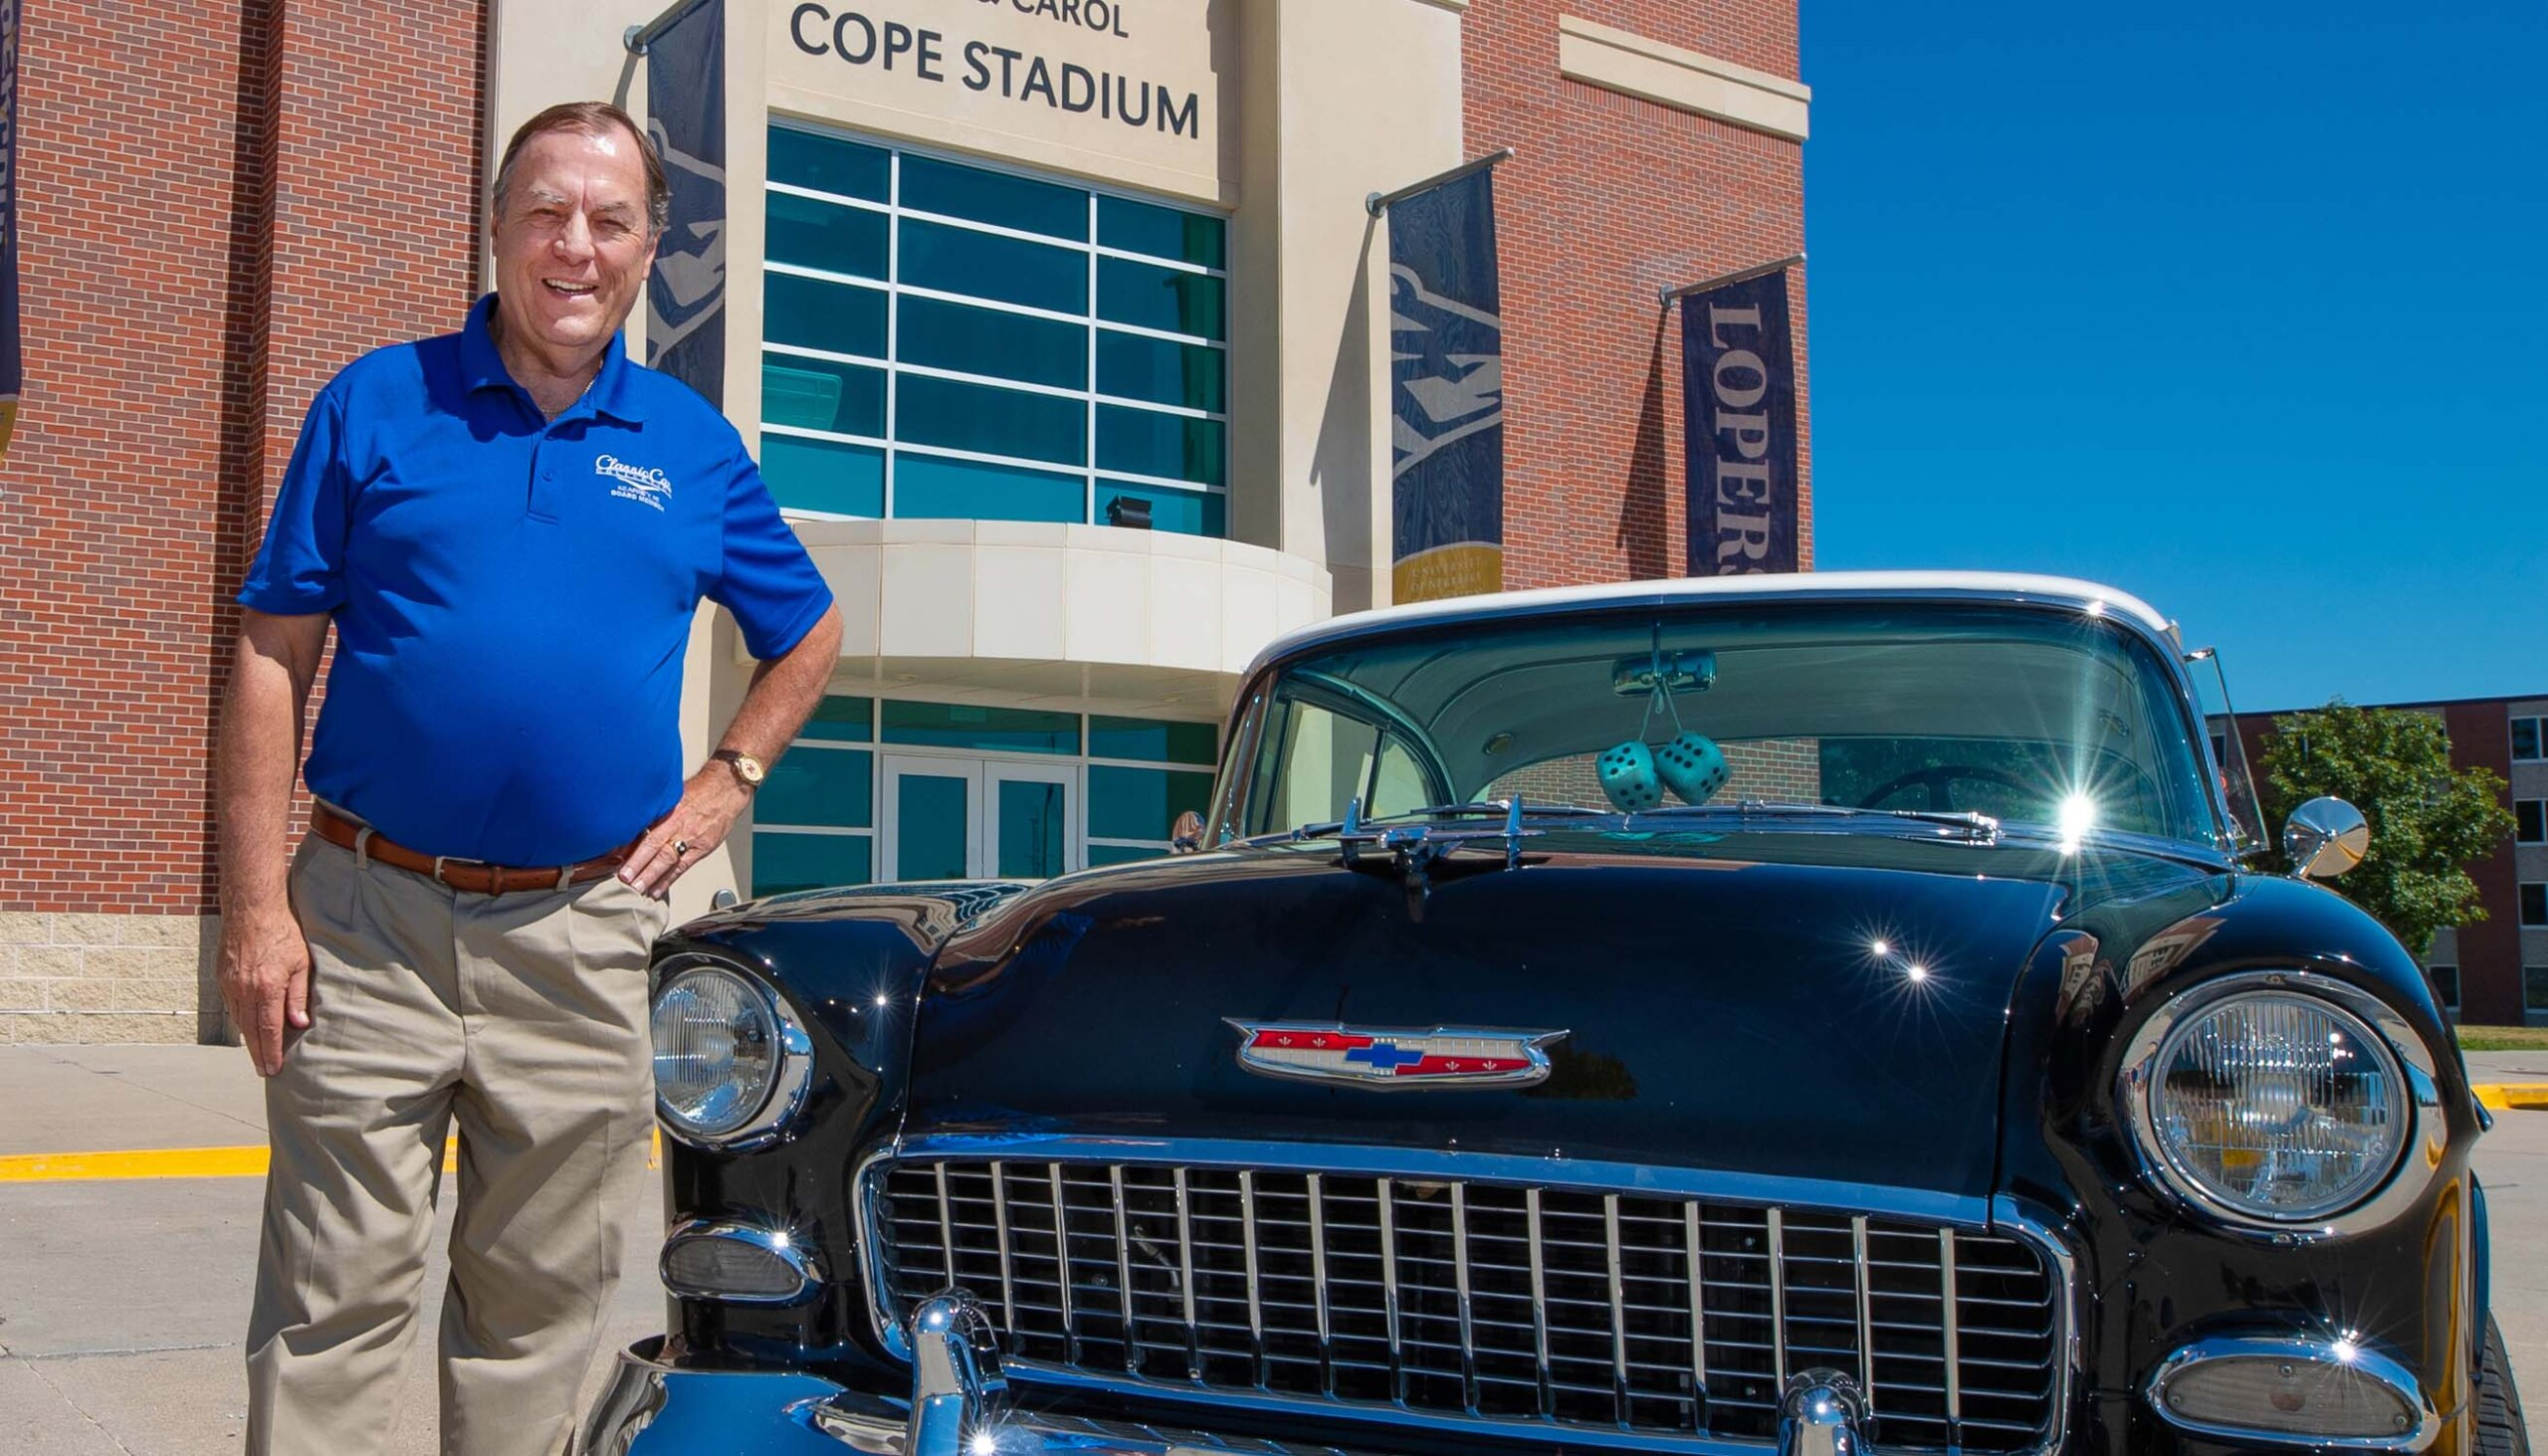 Brad Kernick loves classic cars and Loper football. He serves as chairman of the annual Cruise Nite celebration in Kearney and the Loper Football Backers event, which raises money for UNK student-athlete scholarships. (Photo by Corbey R. Dorsey, UNK Communications)